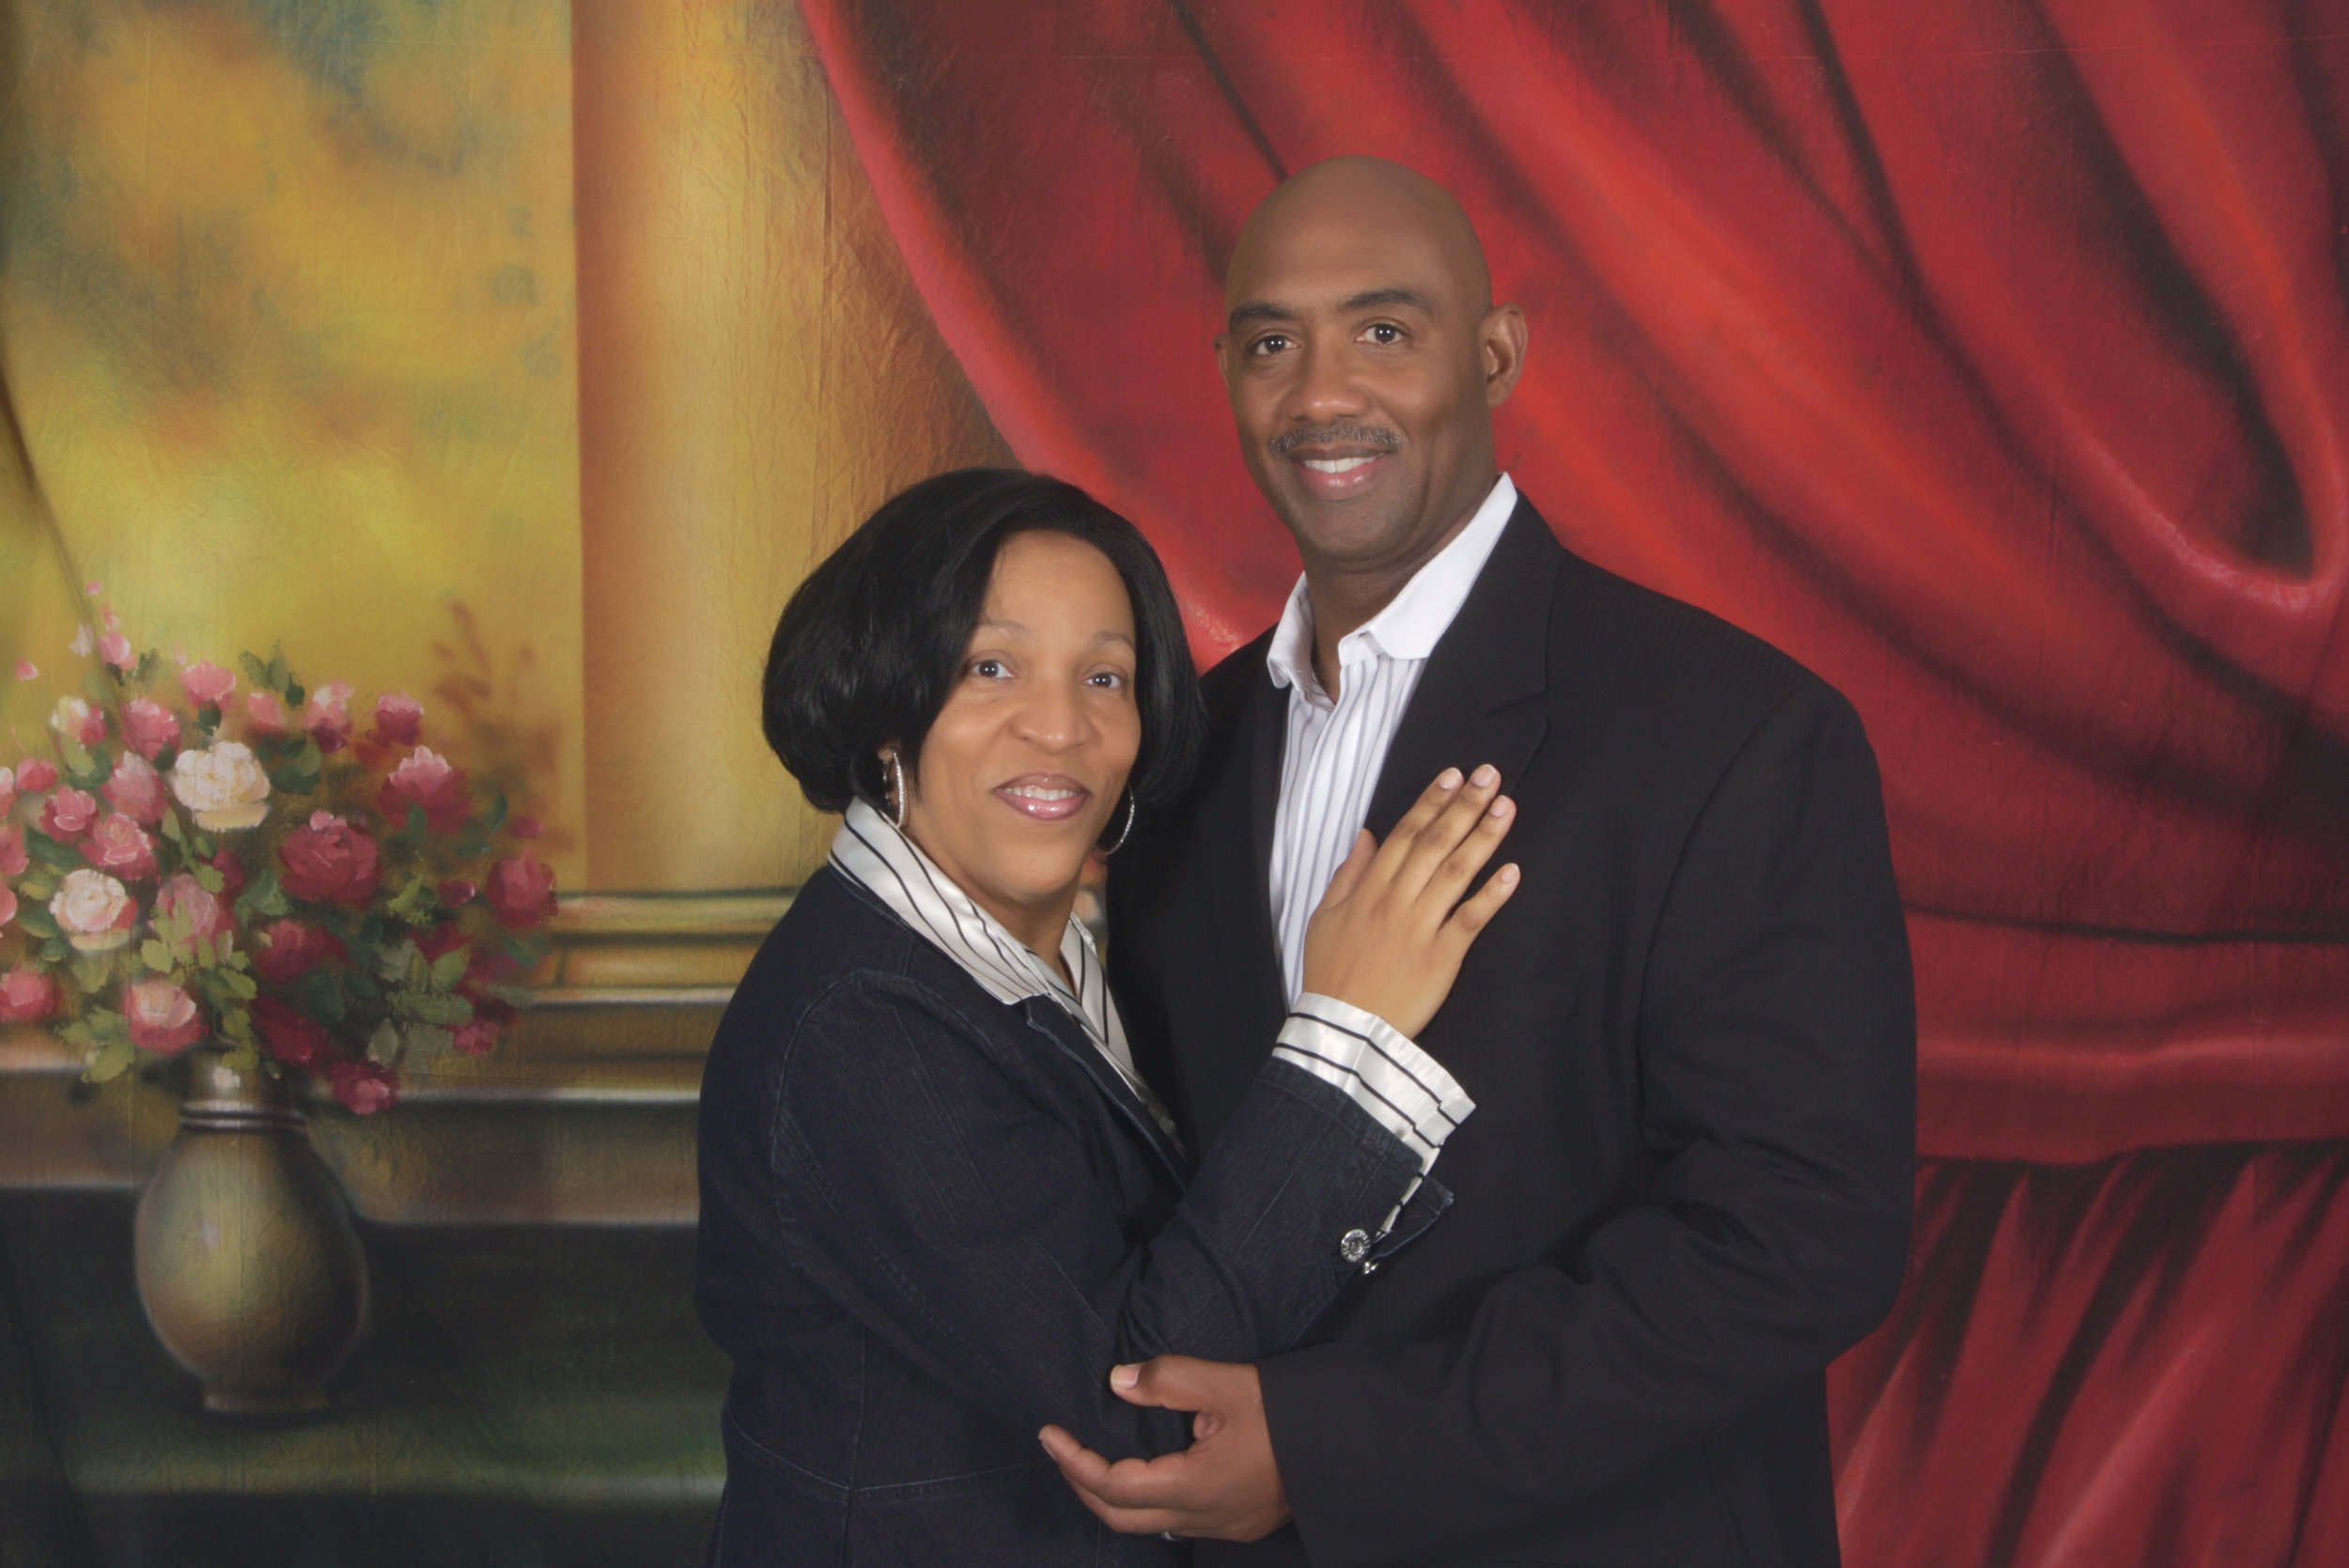 Pastor and First Lady Russell